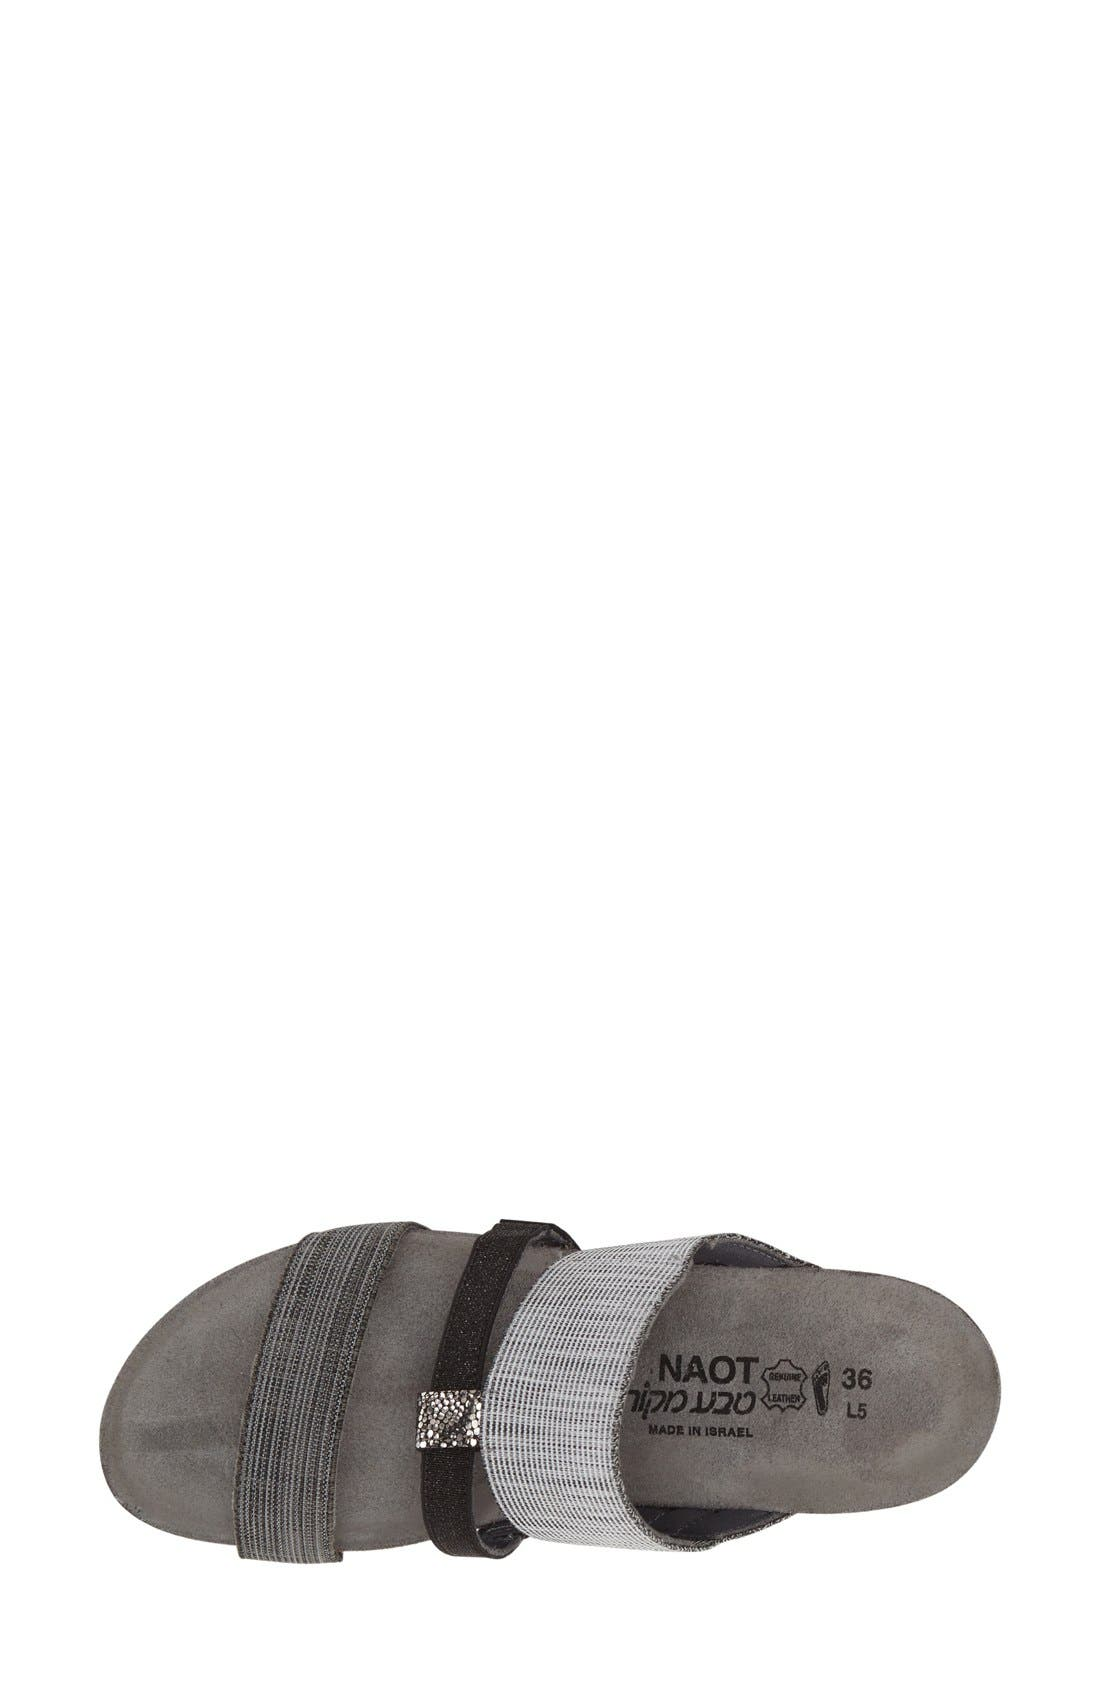 'Brenda' Slip-On Sandal,                             Alternate thumbnail 3, color,                             GREY/ BLACK LEATHER FABRIC